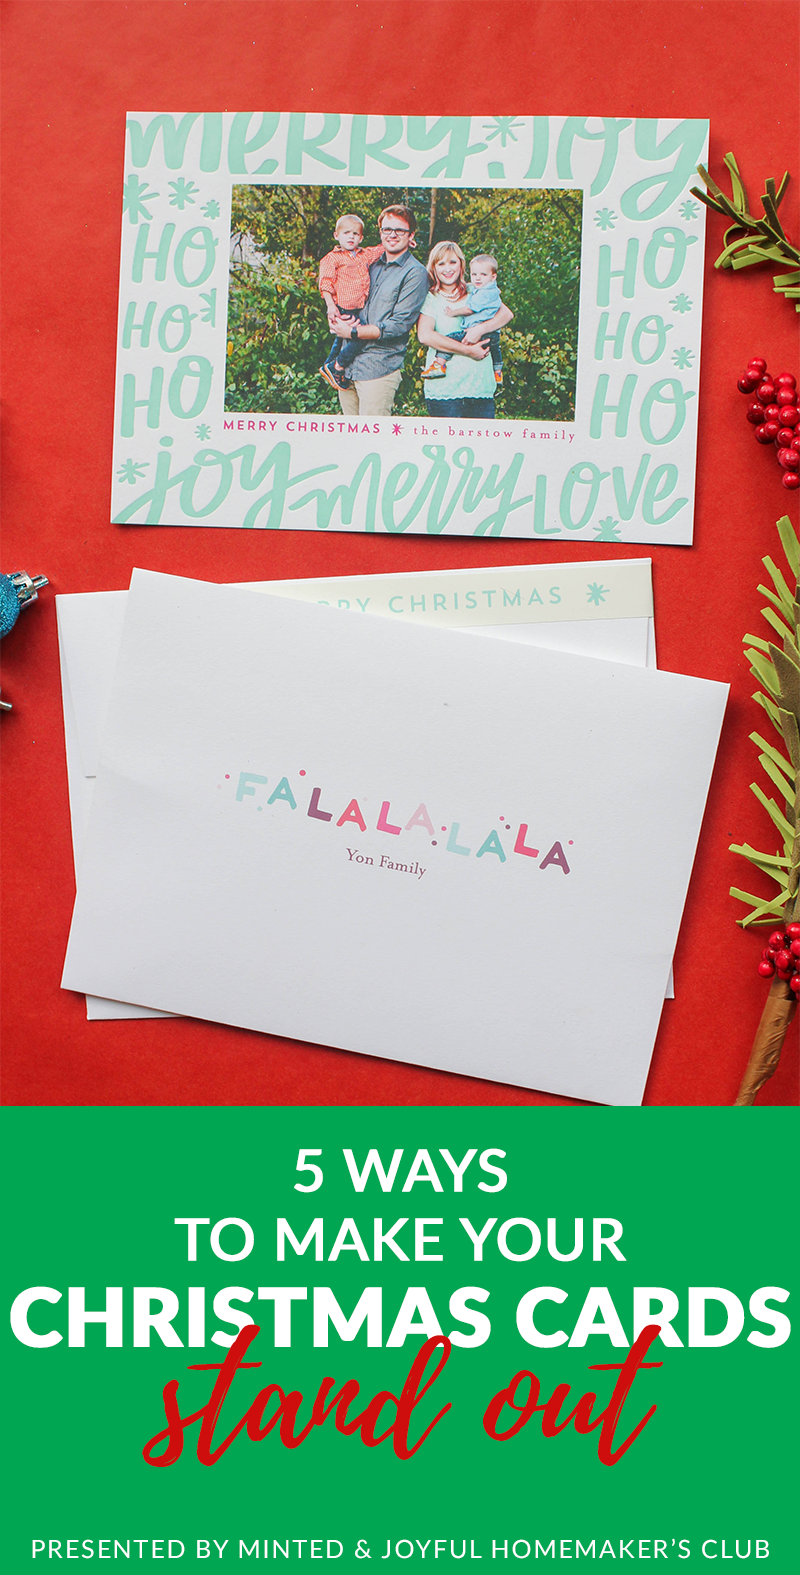 Tips for making your Christmas cards stand out from the crowd! #Christmas #Christmascards #Minted #letterpress